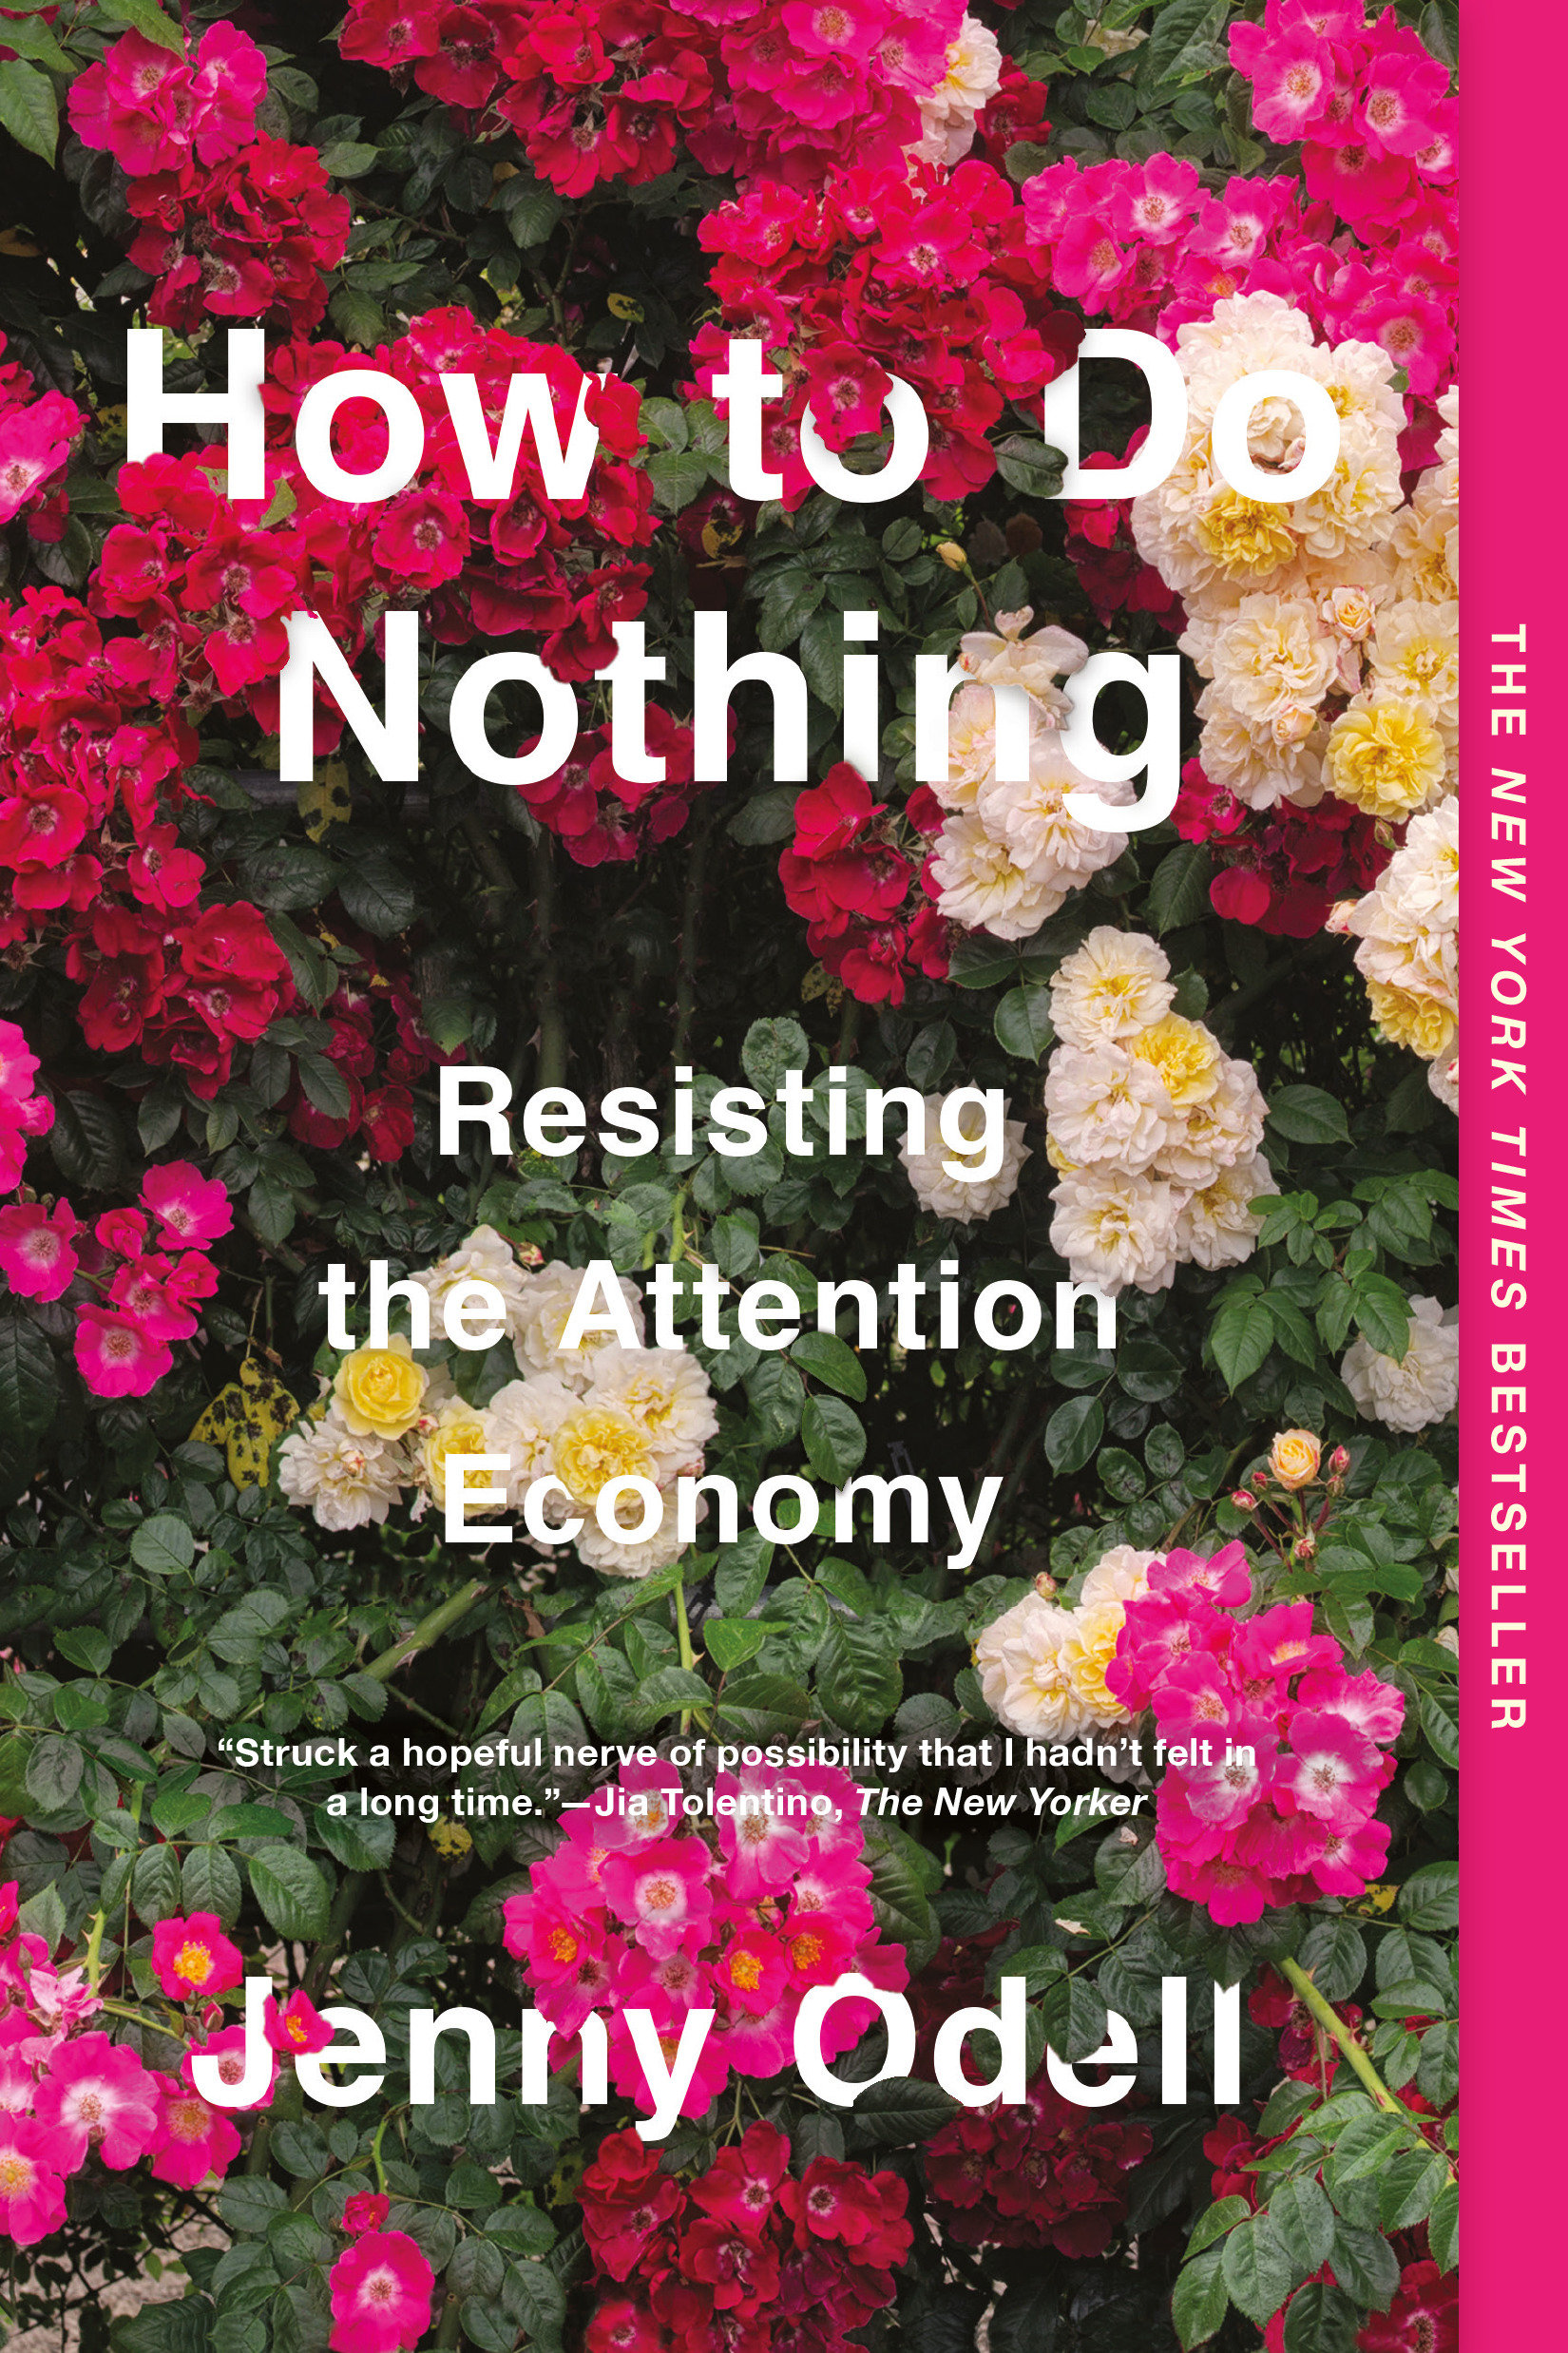 How to Do Nothing Resisting the Attention Economy